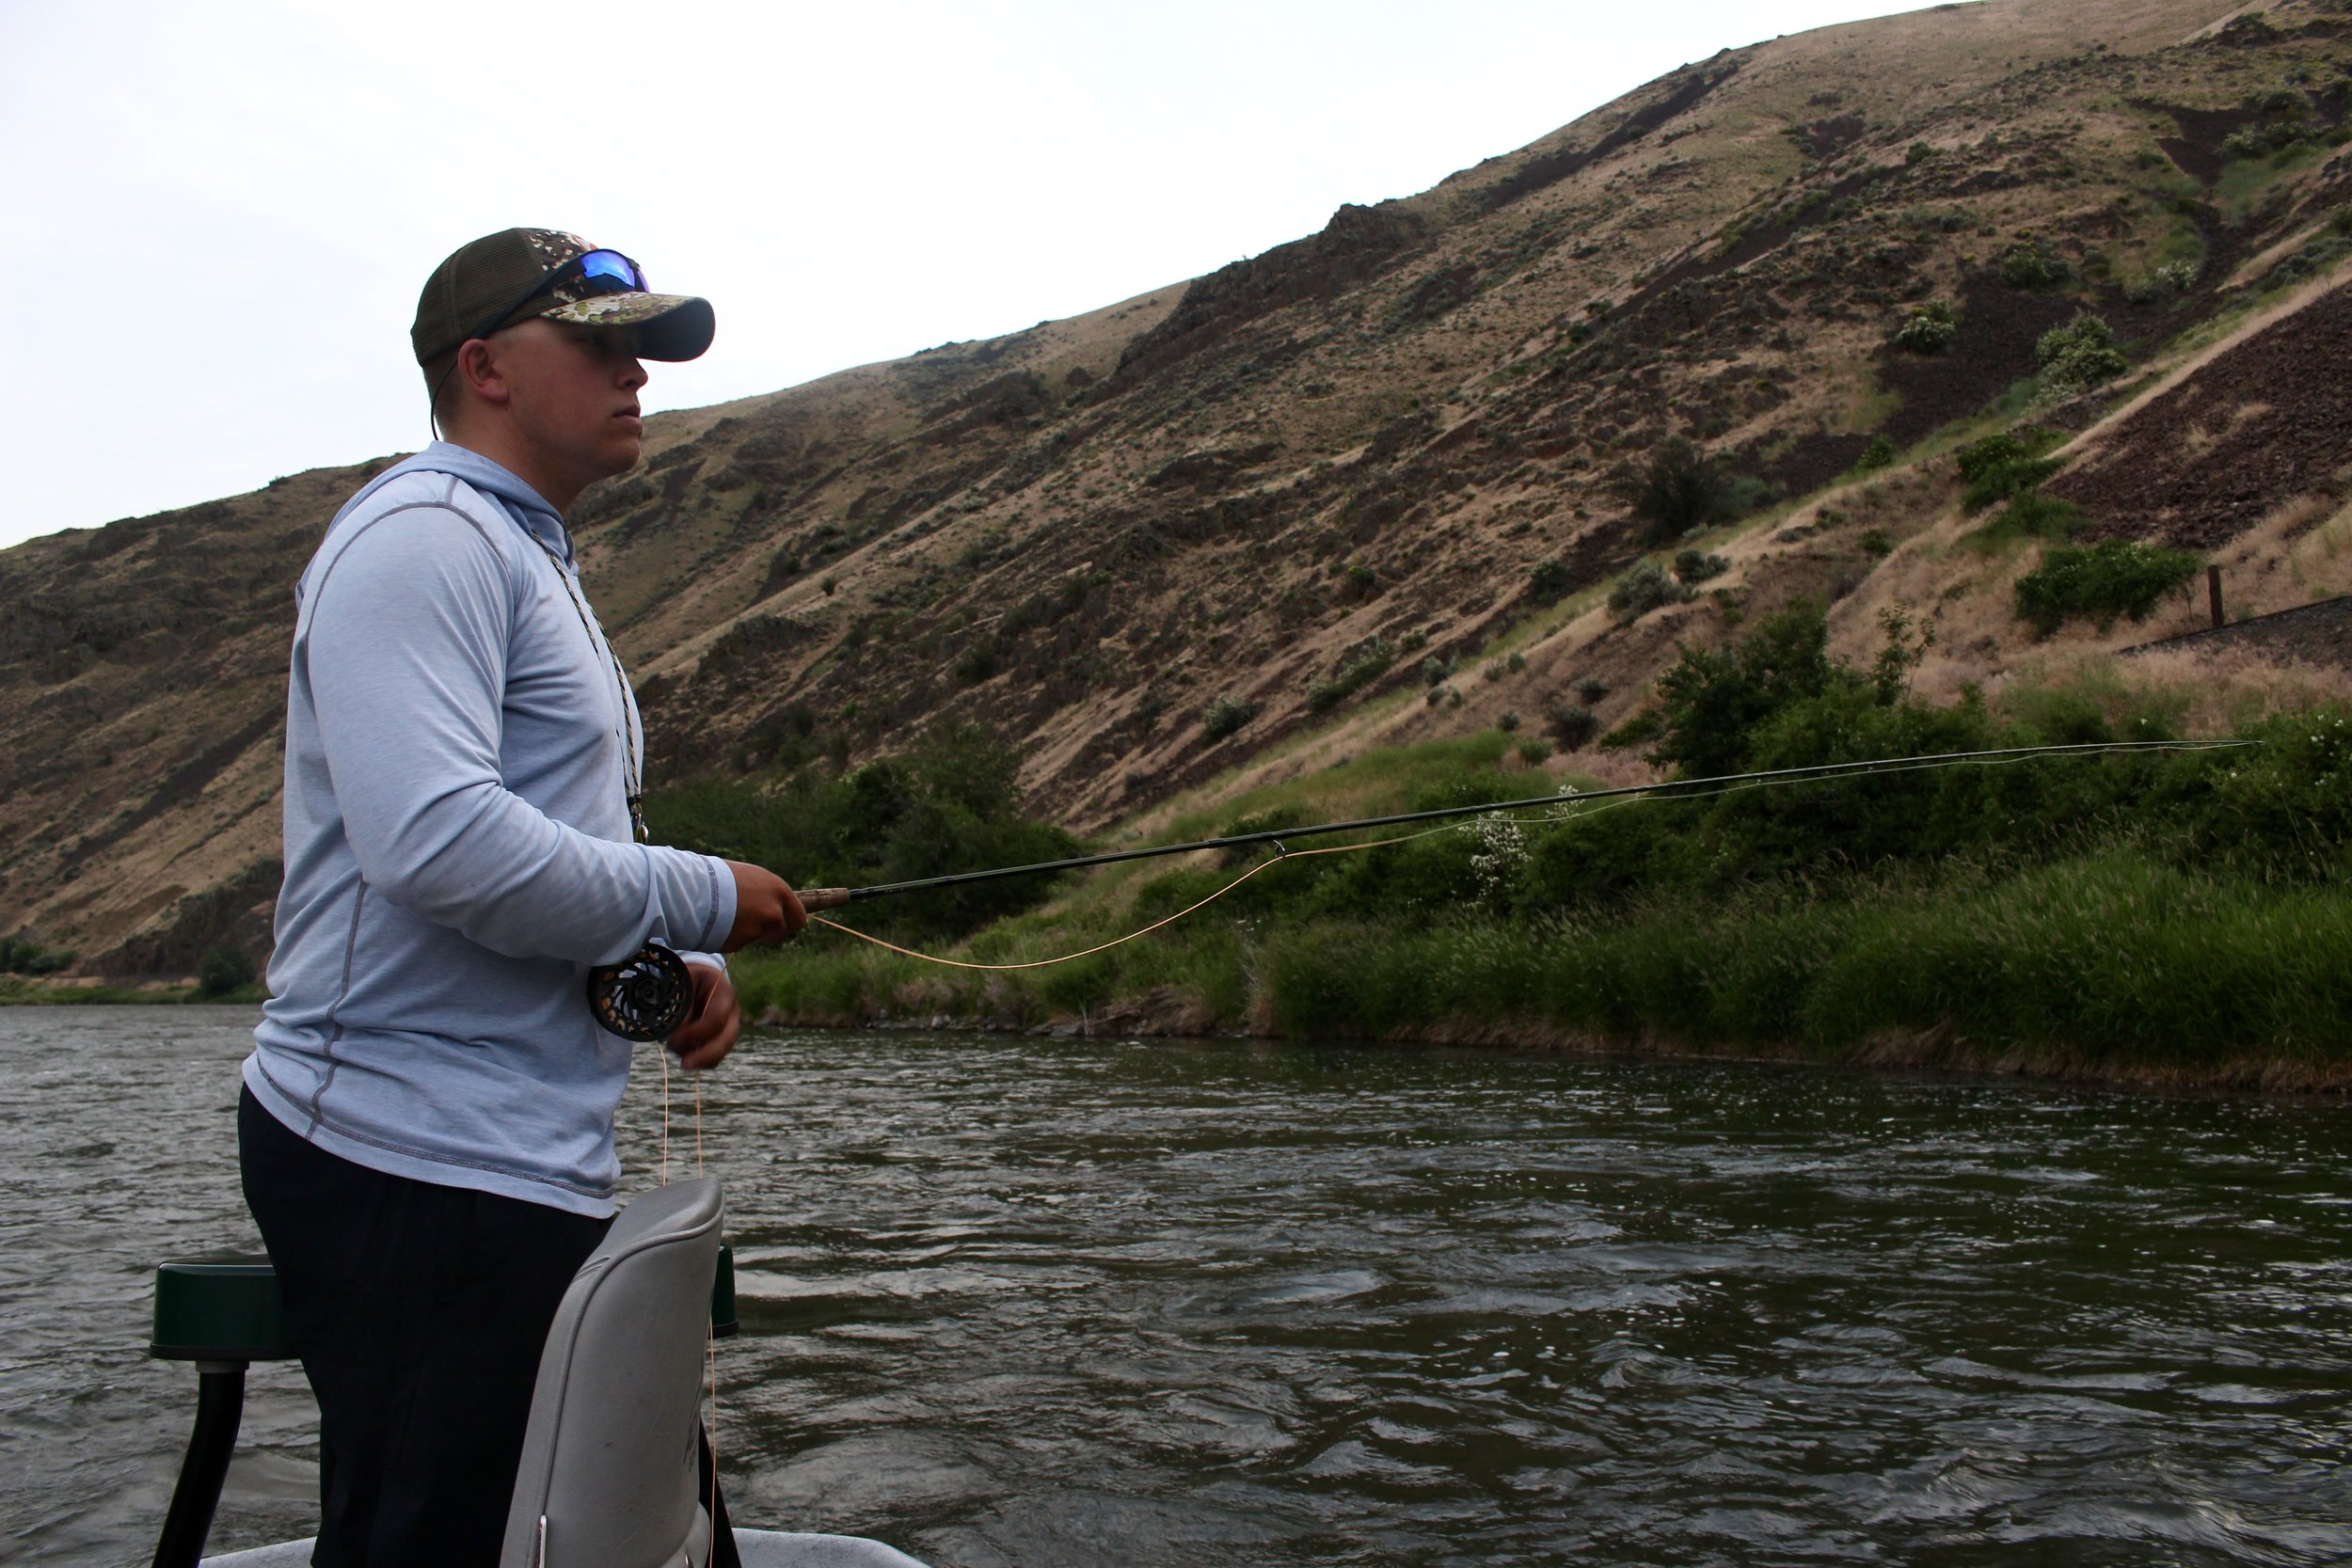 Fishing for rising trout on the Yakima River